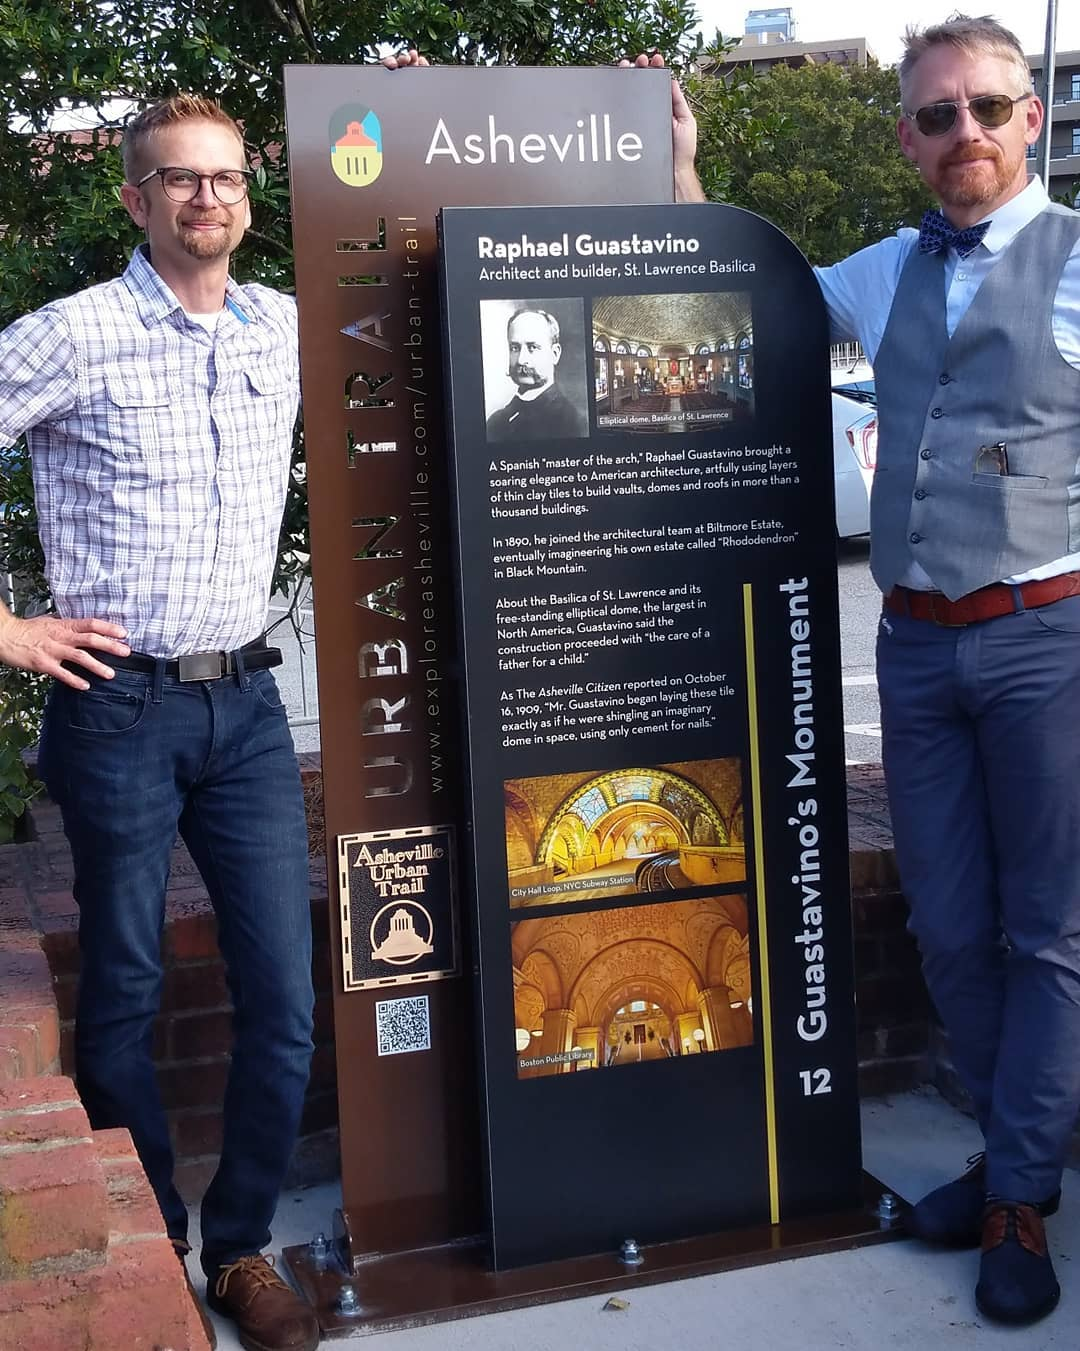 Recent sign designed, engineered and fabricated in collaboration with @giganticavl, @chukkb & @allegraasheville with and for the @cityofasheville and @avldowntown as part the Urban Trail project.  Feeling grateful for the opportunity to help honor the legacy and genius of architect Raphael Guastafino. If you don't know who that is, look him up. Much respect is due.  You can find it in front the Basilica of St. Lawrence, right by the Love Asheville mural which was the first project I did with Scott Smith a year ago.  I'm pretty proud of this one and what we've accomplished in this  year in general.  Onward